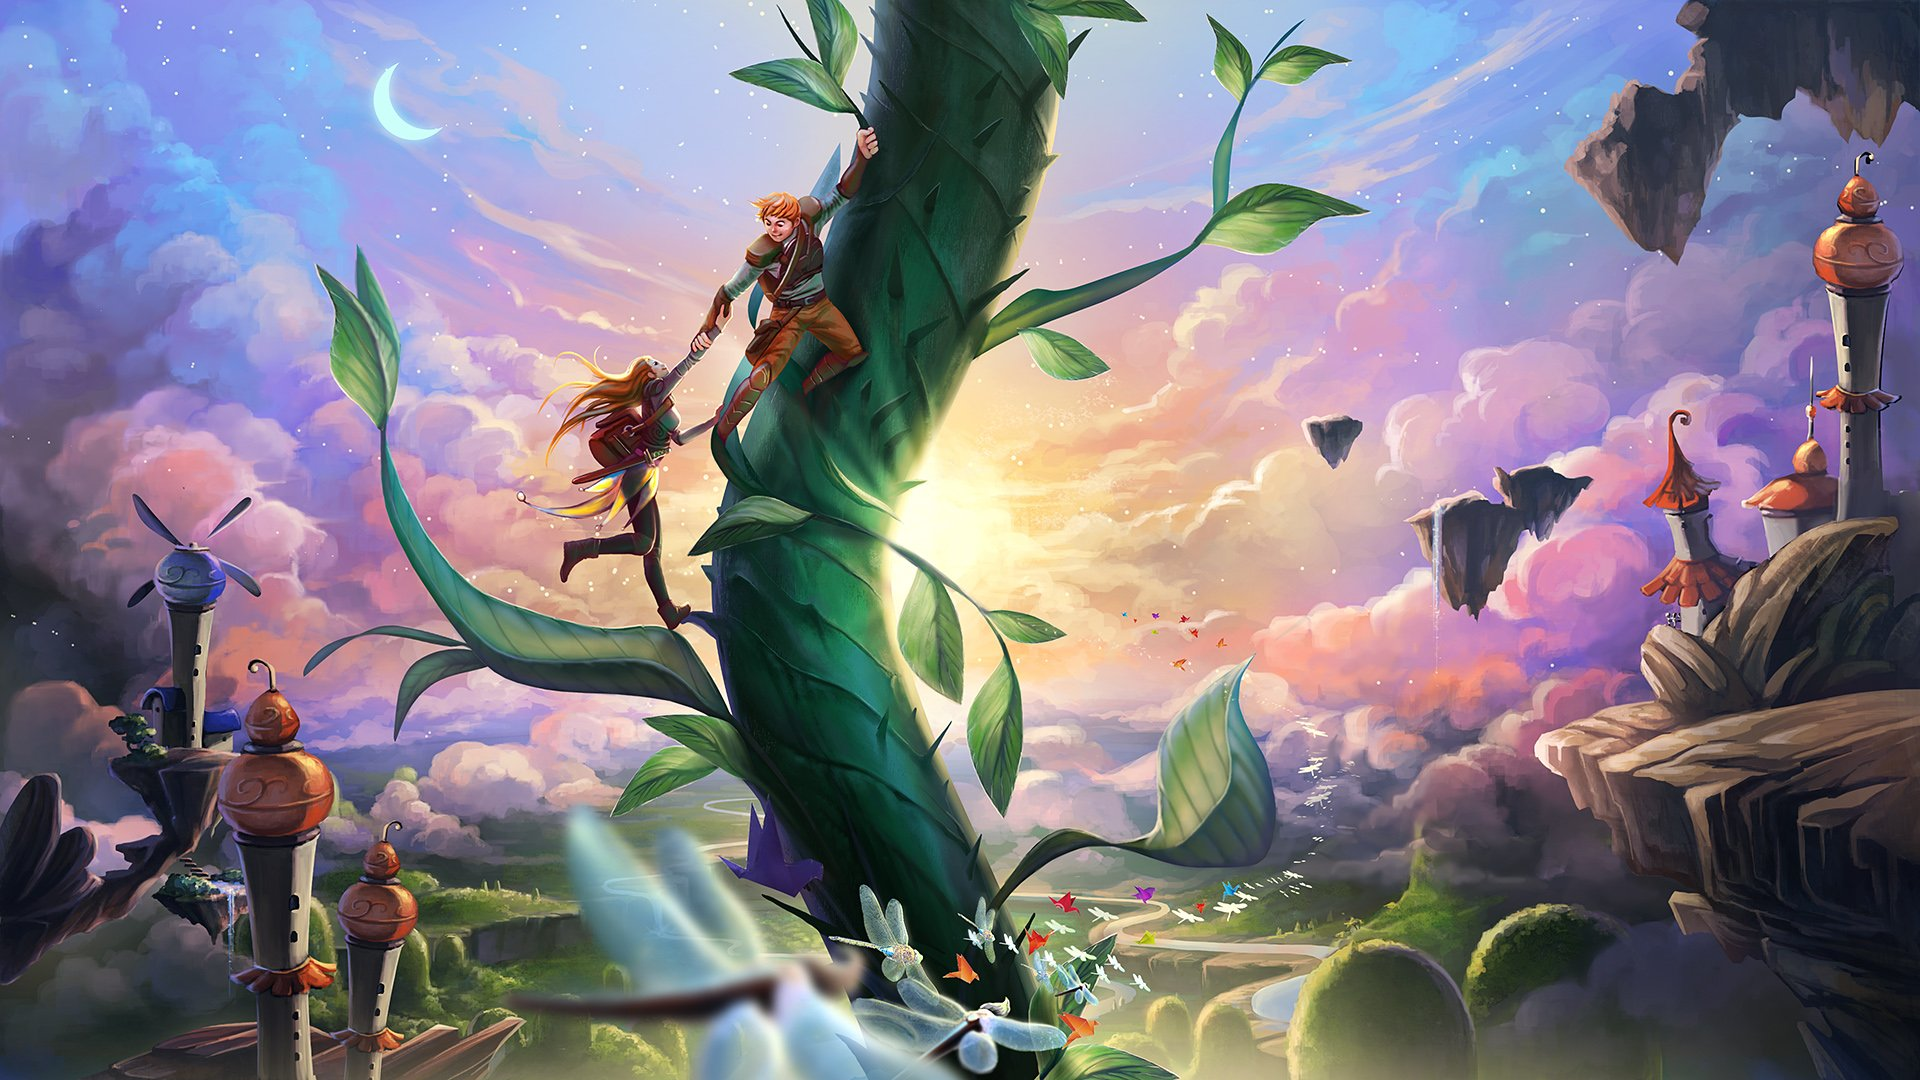 Fantastic world Fairies Clouds Fantasy magical beanstalk ...